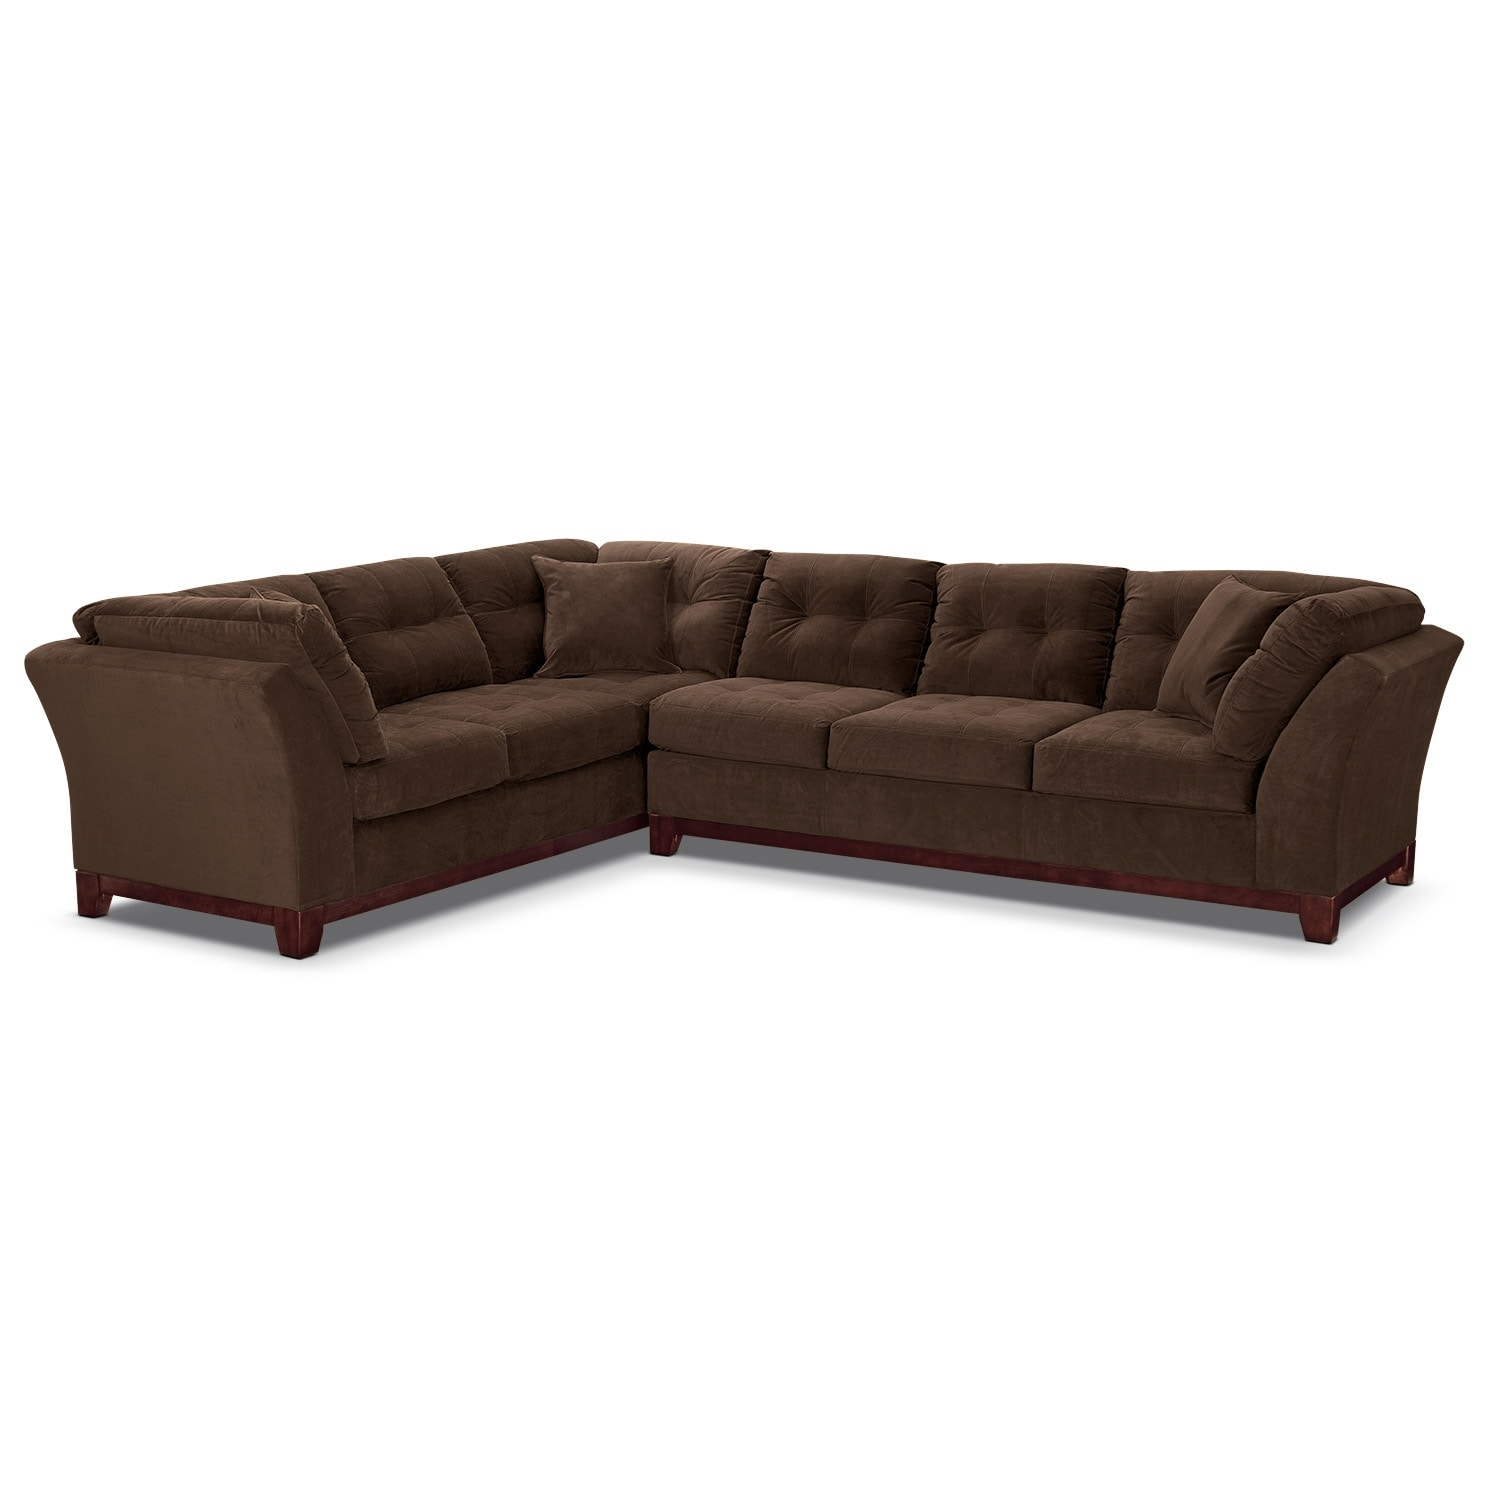 "Living Room Furniture - Solace 2-Piece Right-Facing 132"" Sofa Sectional - Chocolate"